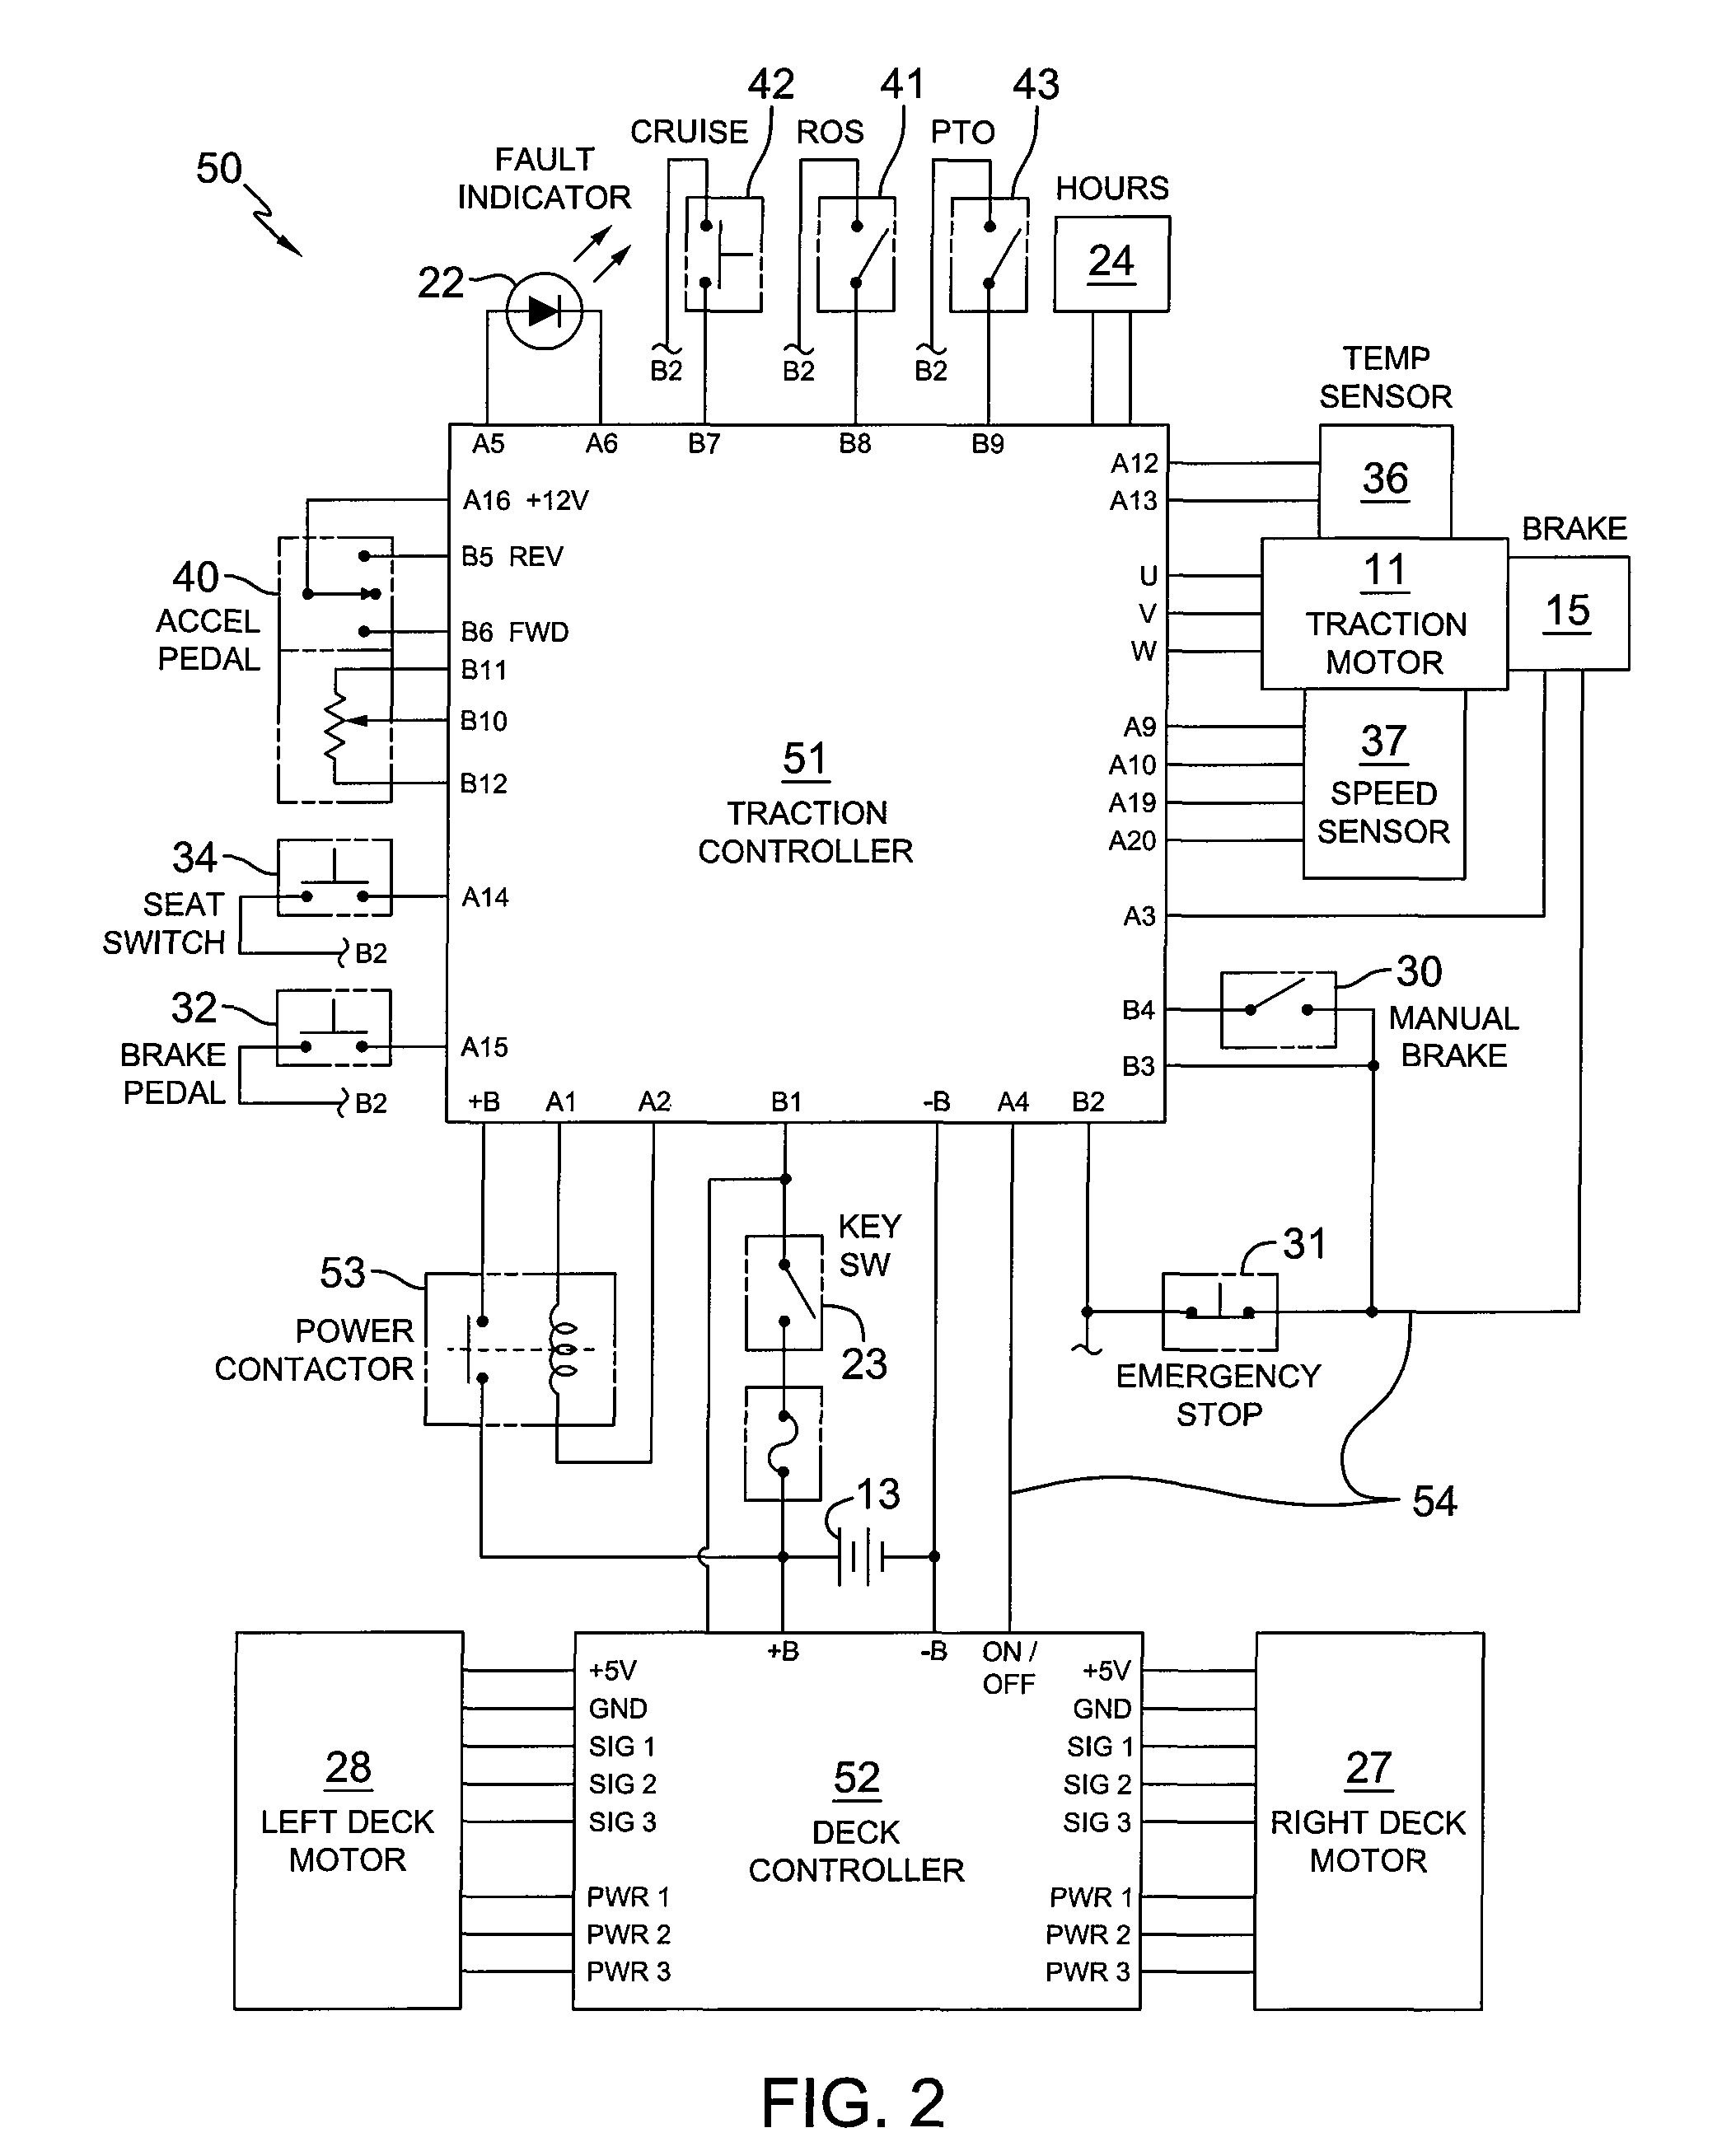 Toro workman wiring diagram on patent us8234026 electric drive vehicle control system google Bobcat Wiring Diagram toro workman hdx wiring diagram